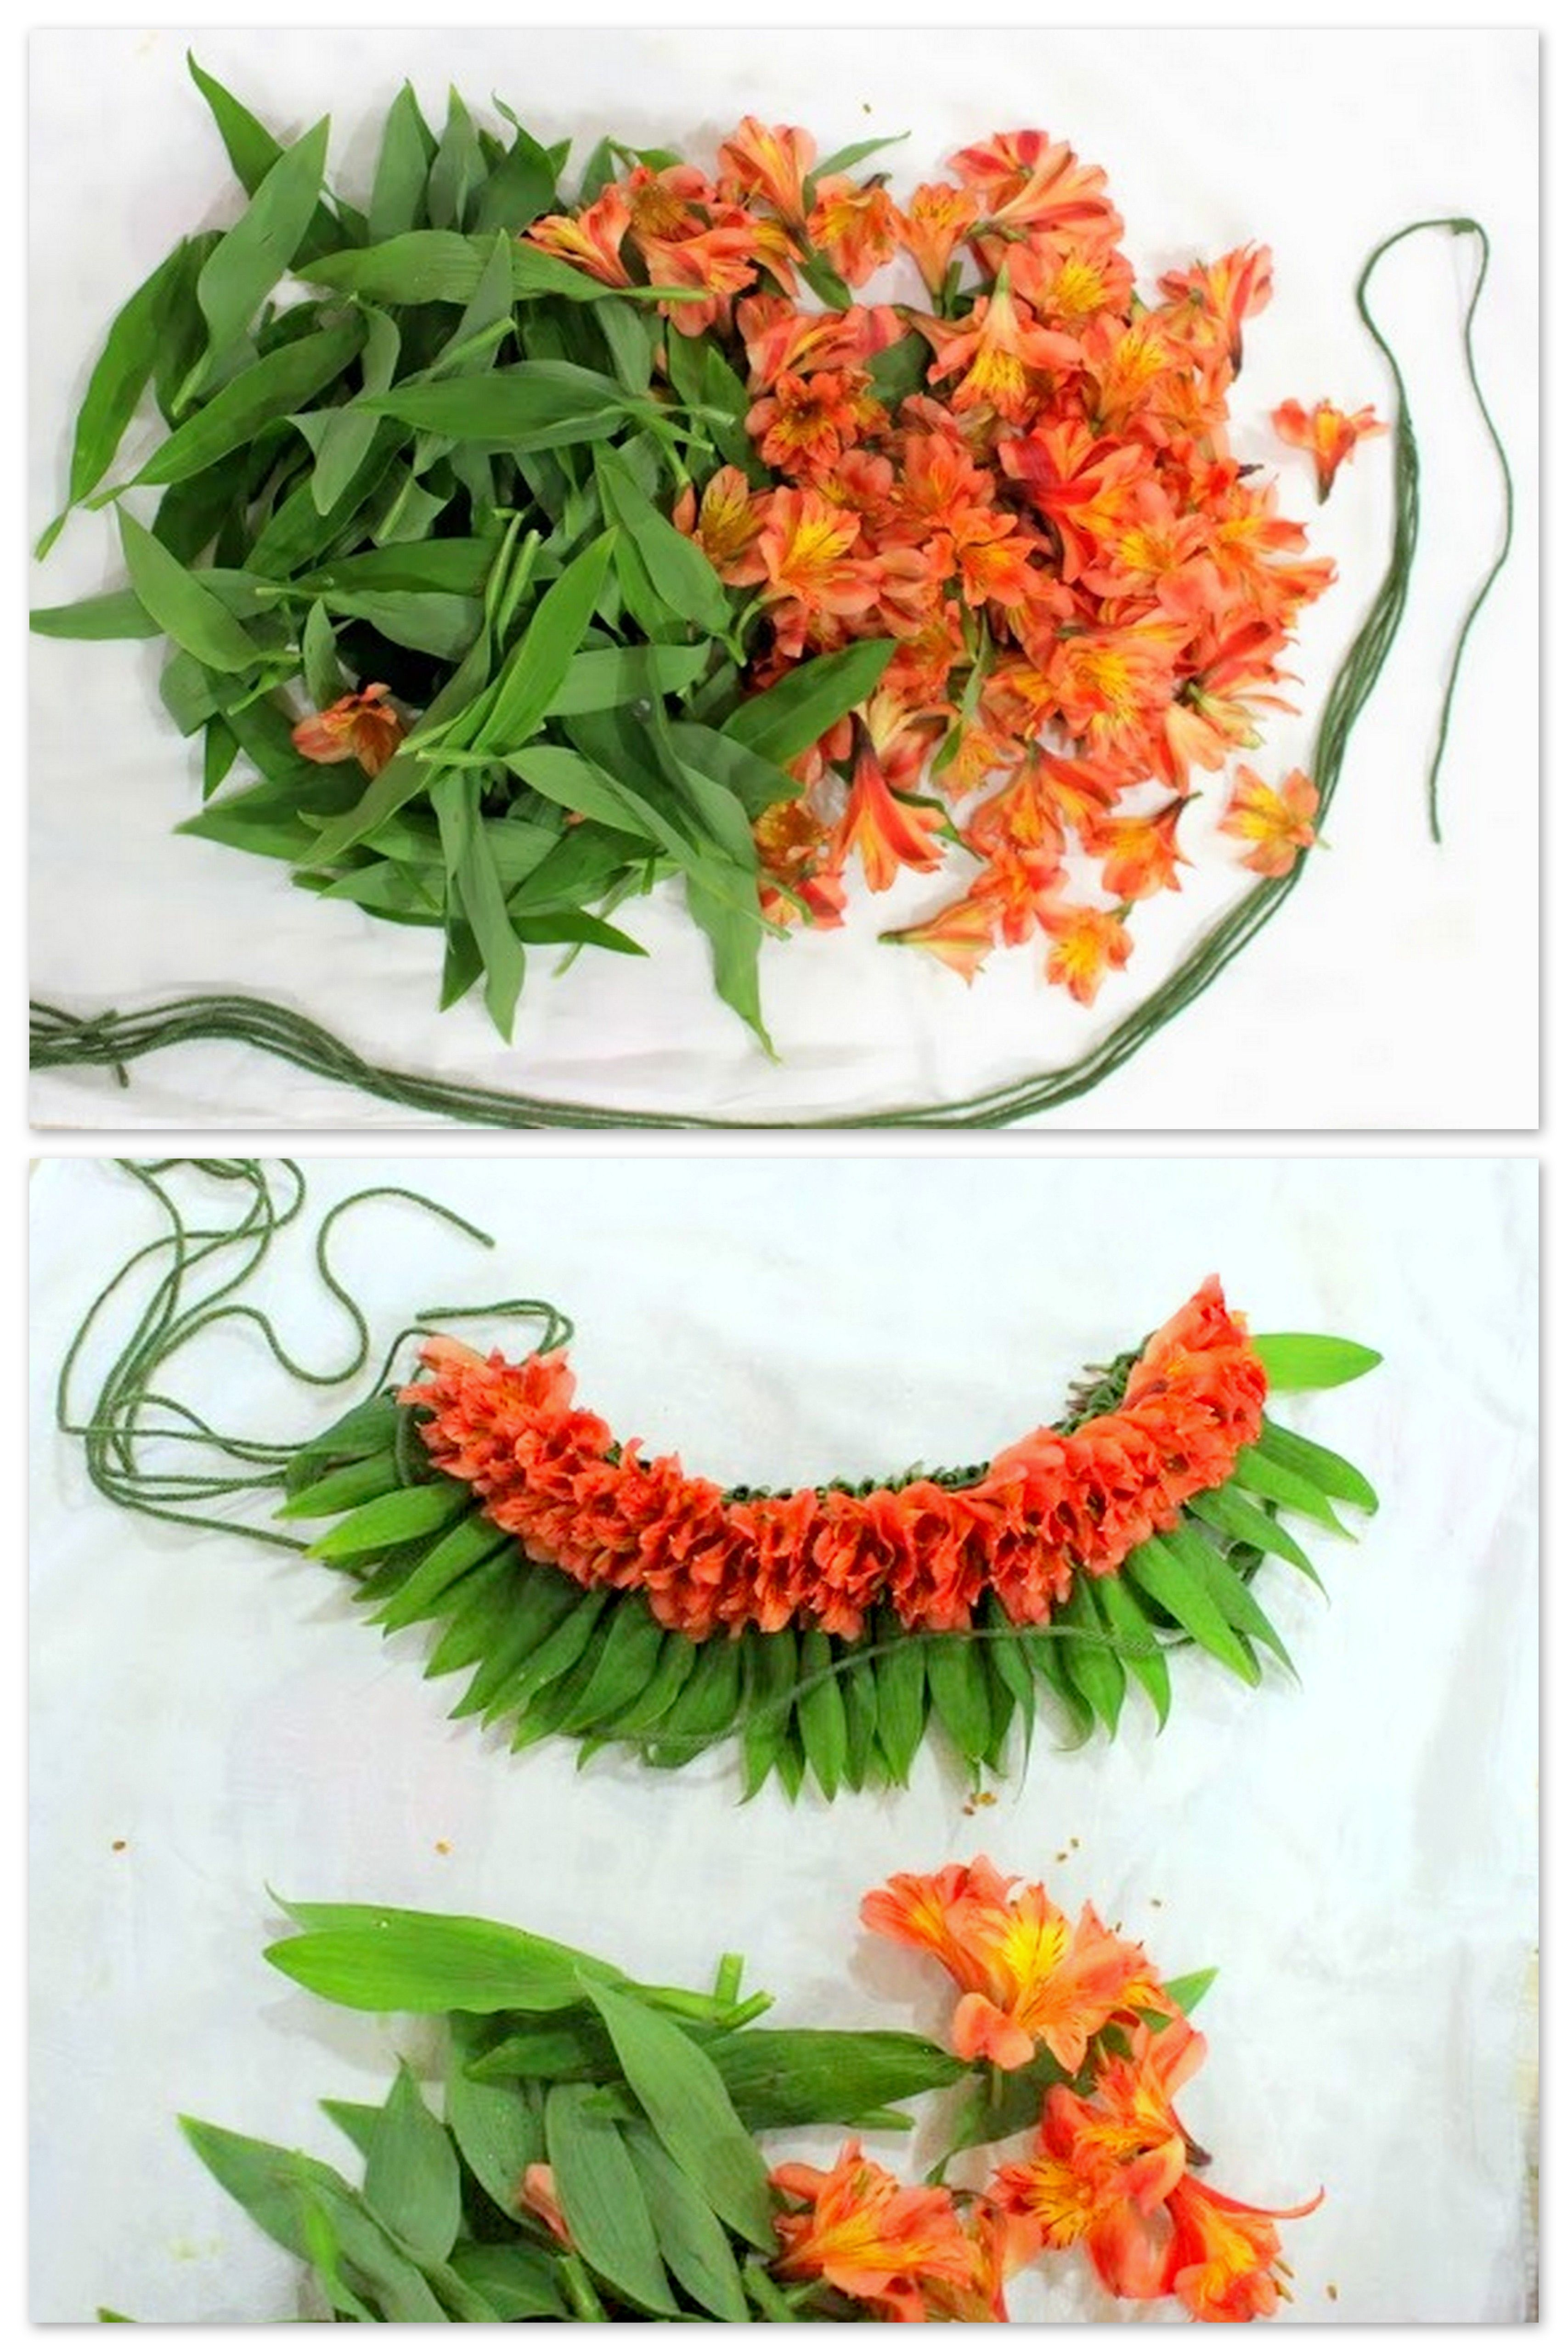 Preparation For Lei Making Making Lei Day Every Day Pinterest